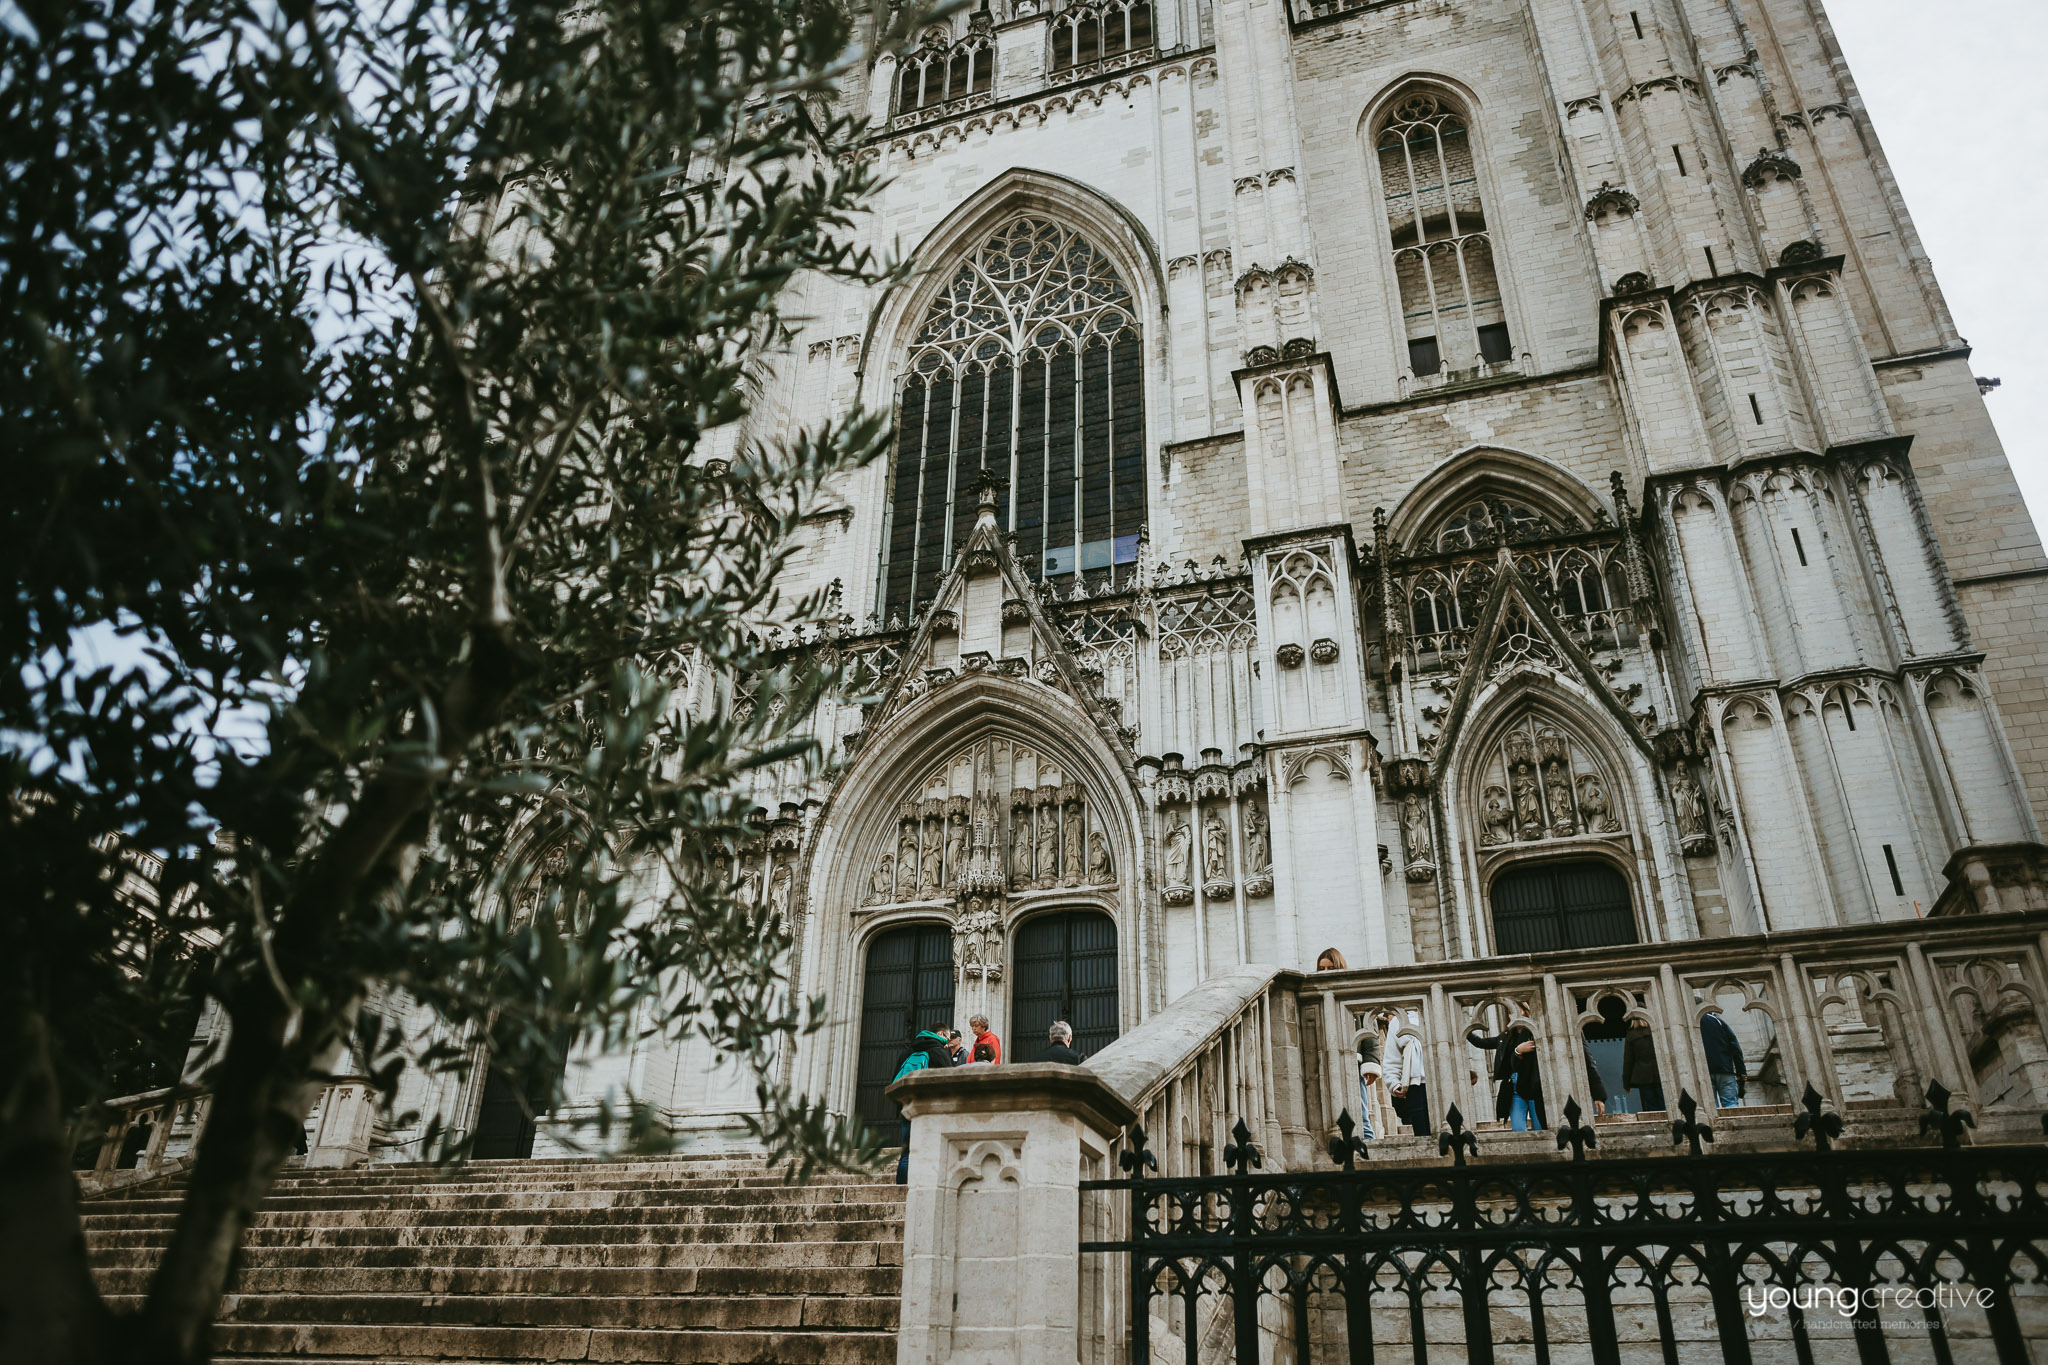 Travel with us @ Belgium | European wedding photographers, based in Romania with availability for destination stories worldwide | youngcreative.info